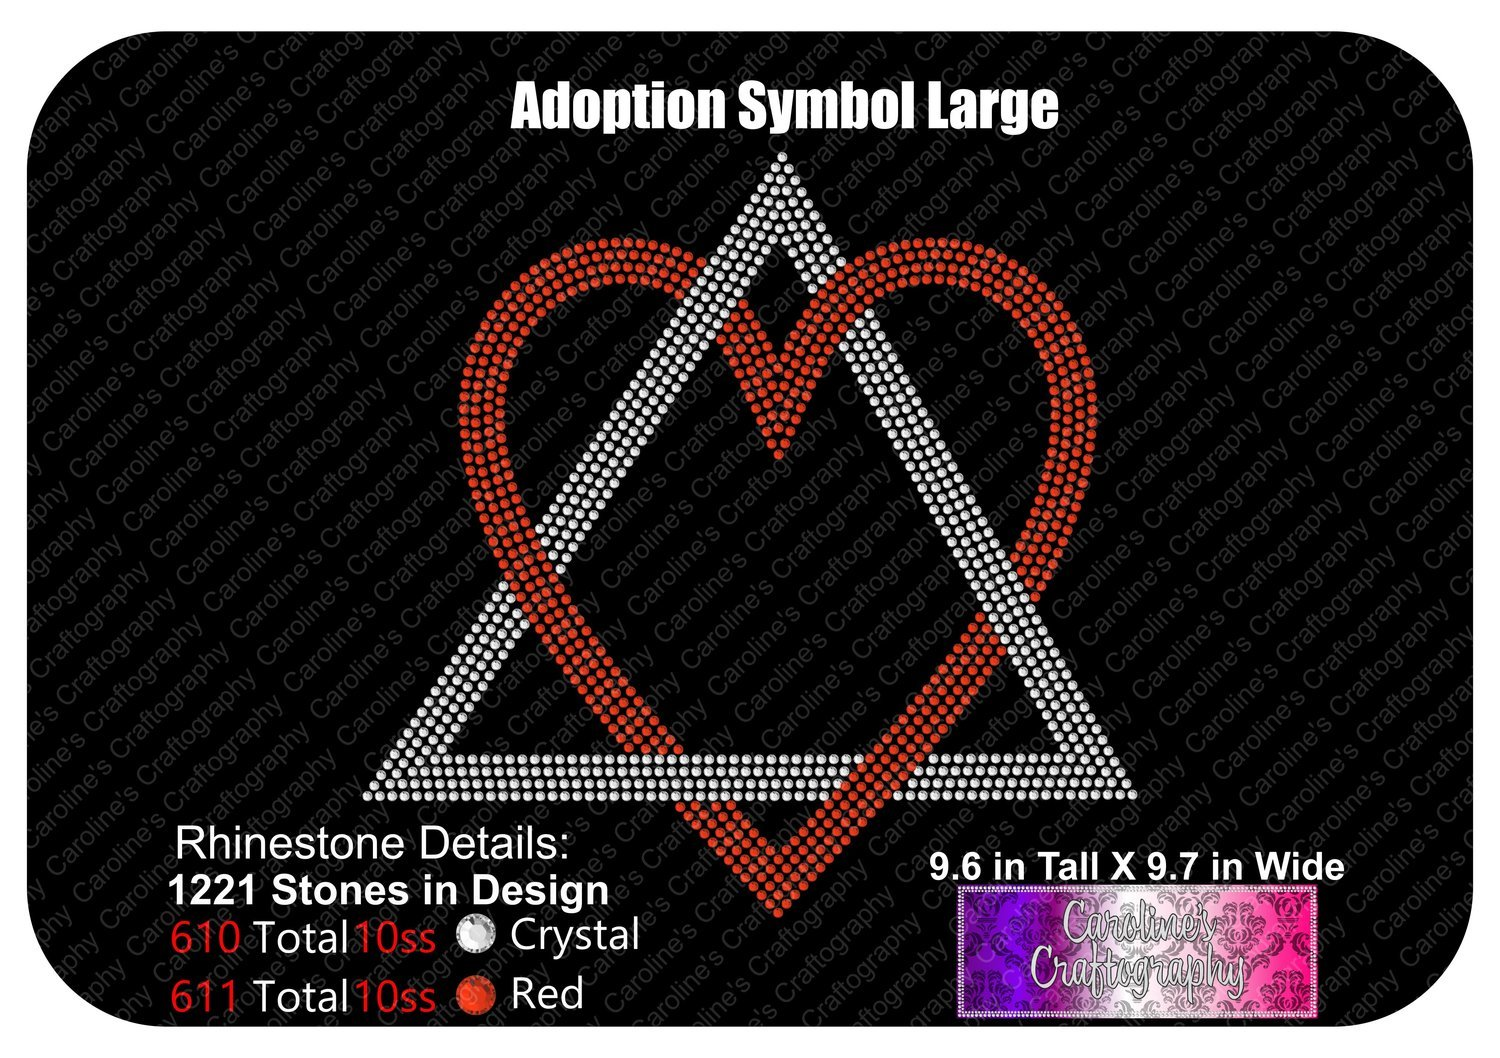 Adoption Symbol Large